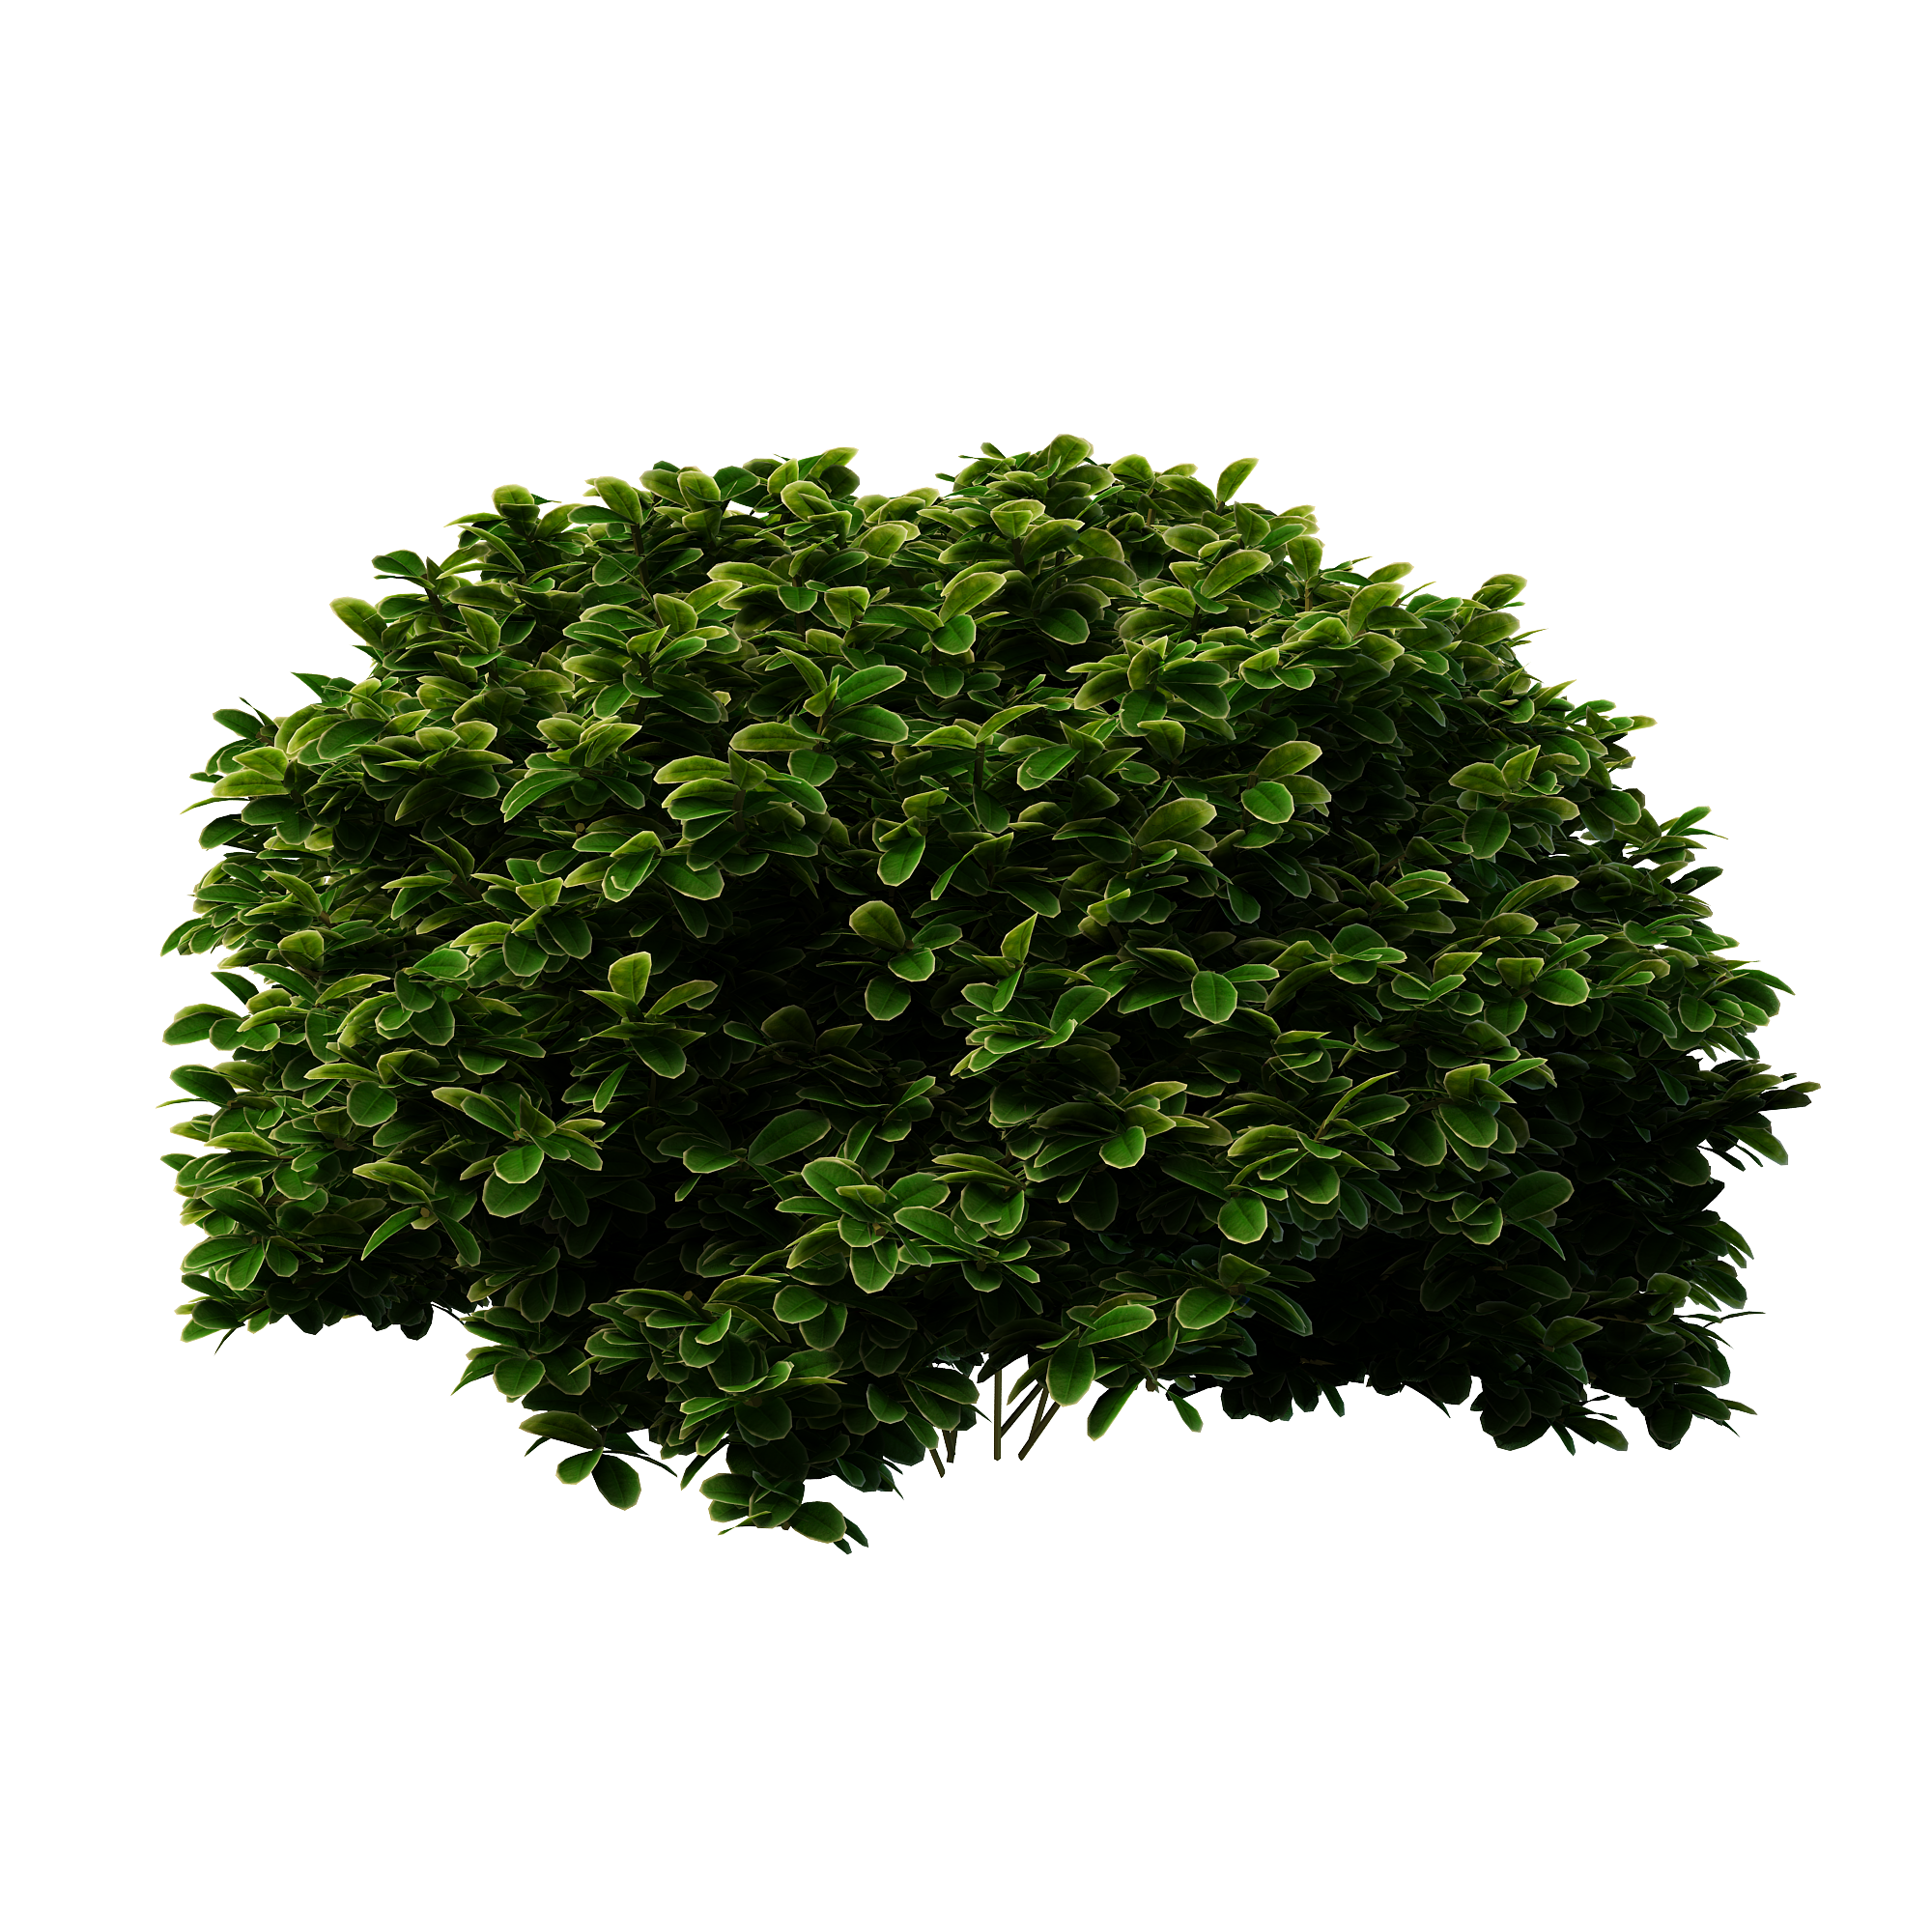 shrubs silhouette png